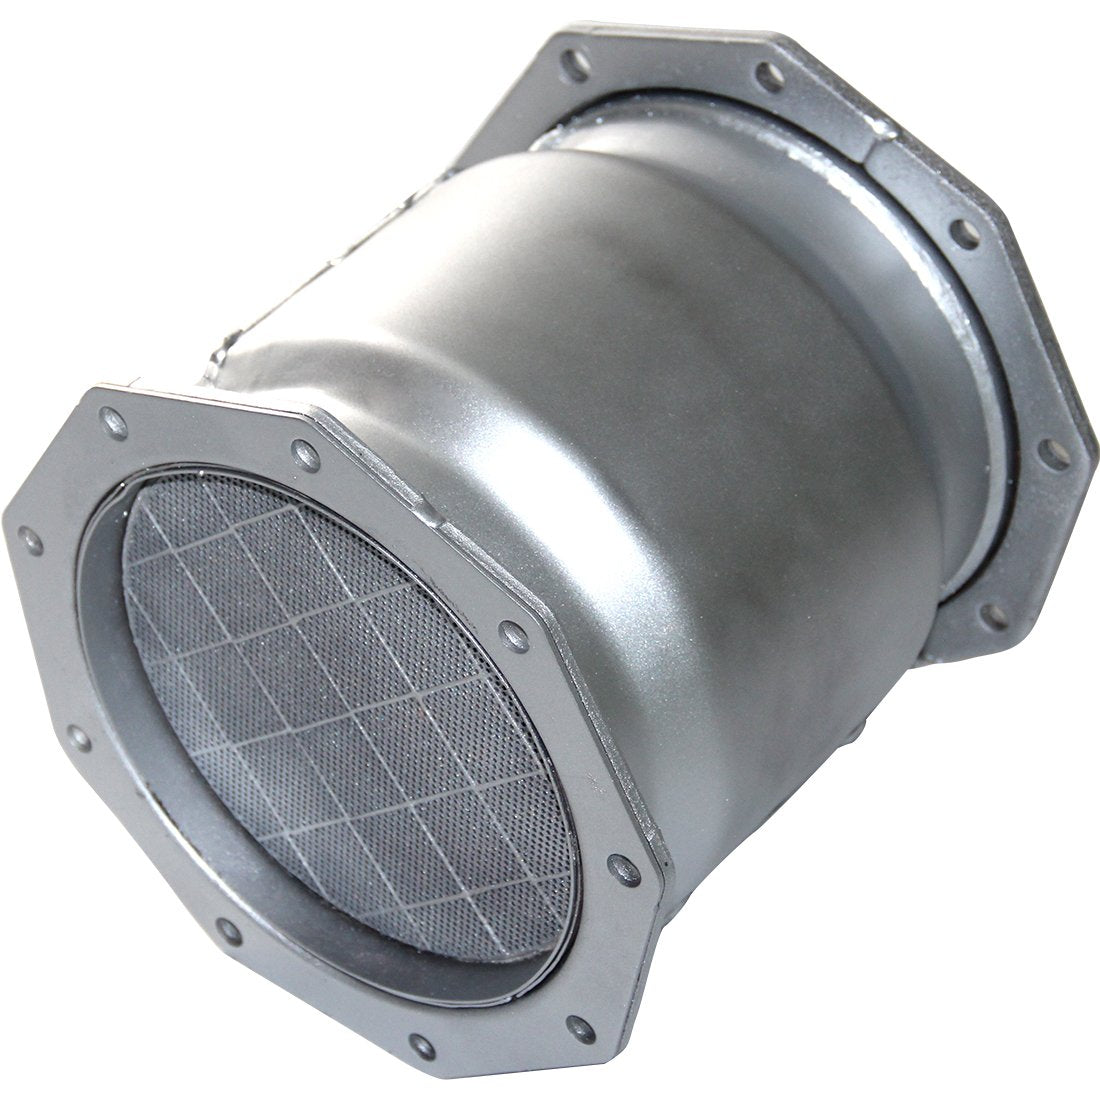 Diesel Particulate Filter for Mistubishi ROSA – TWG Auto